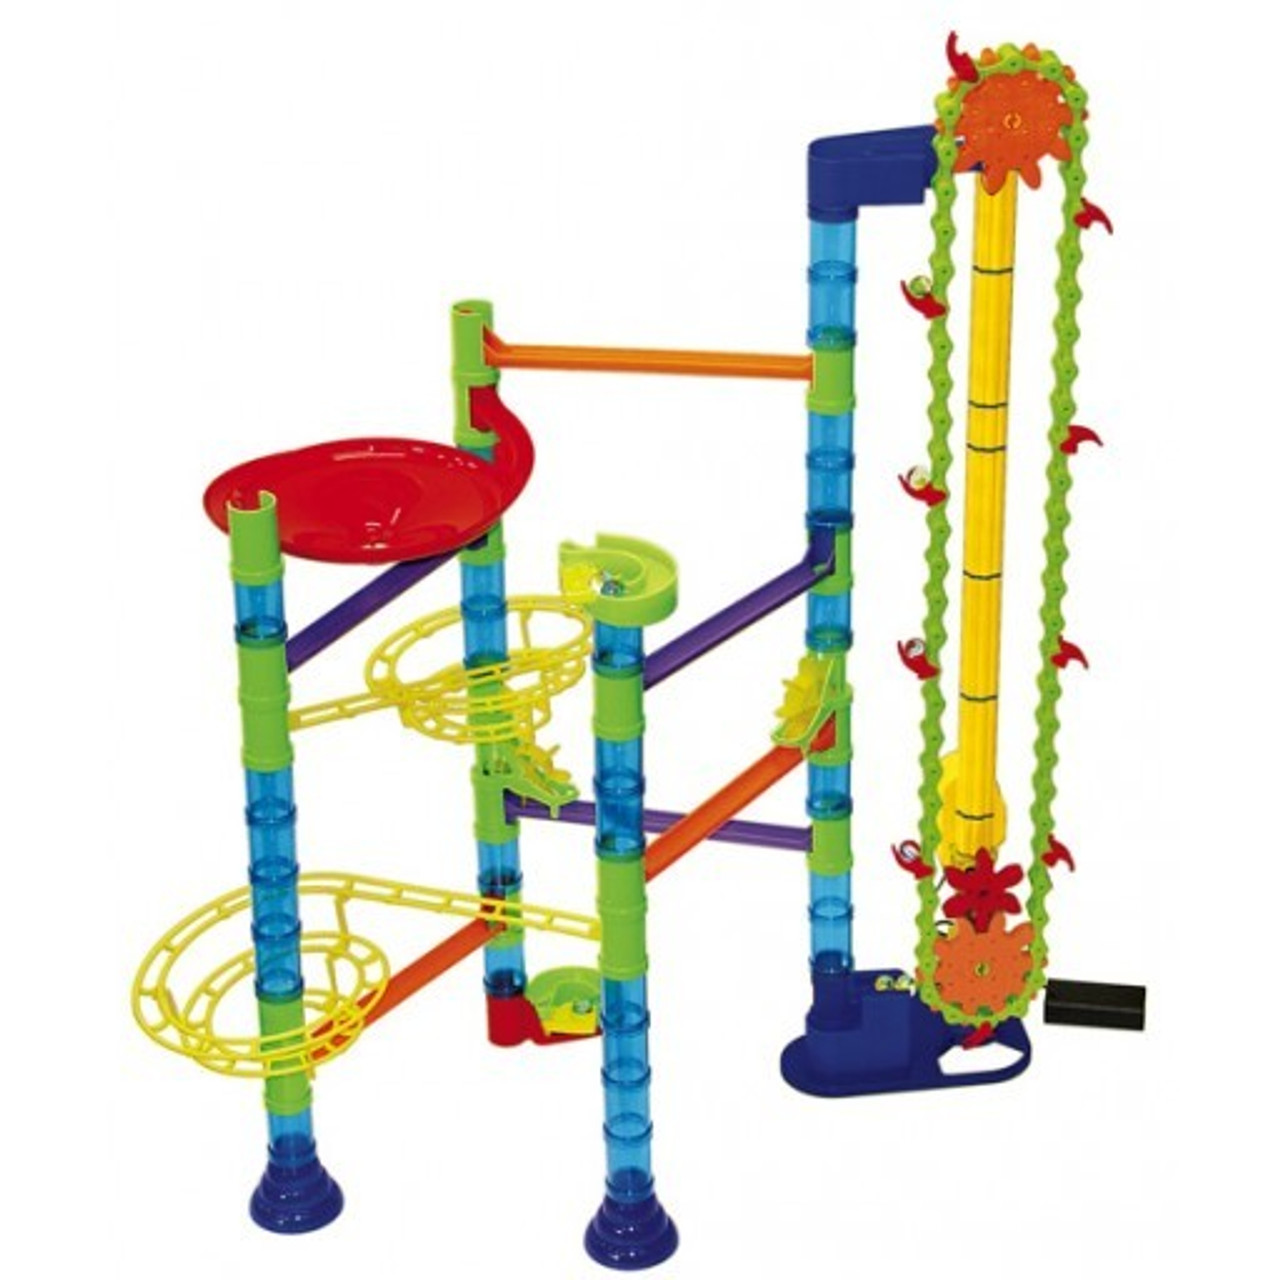 Marble Runs and Techno Gears